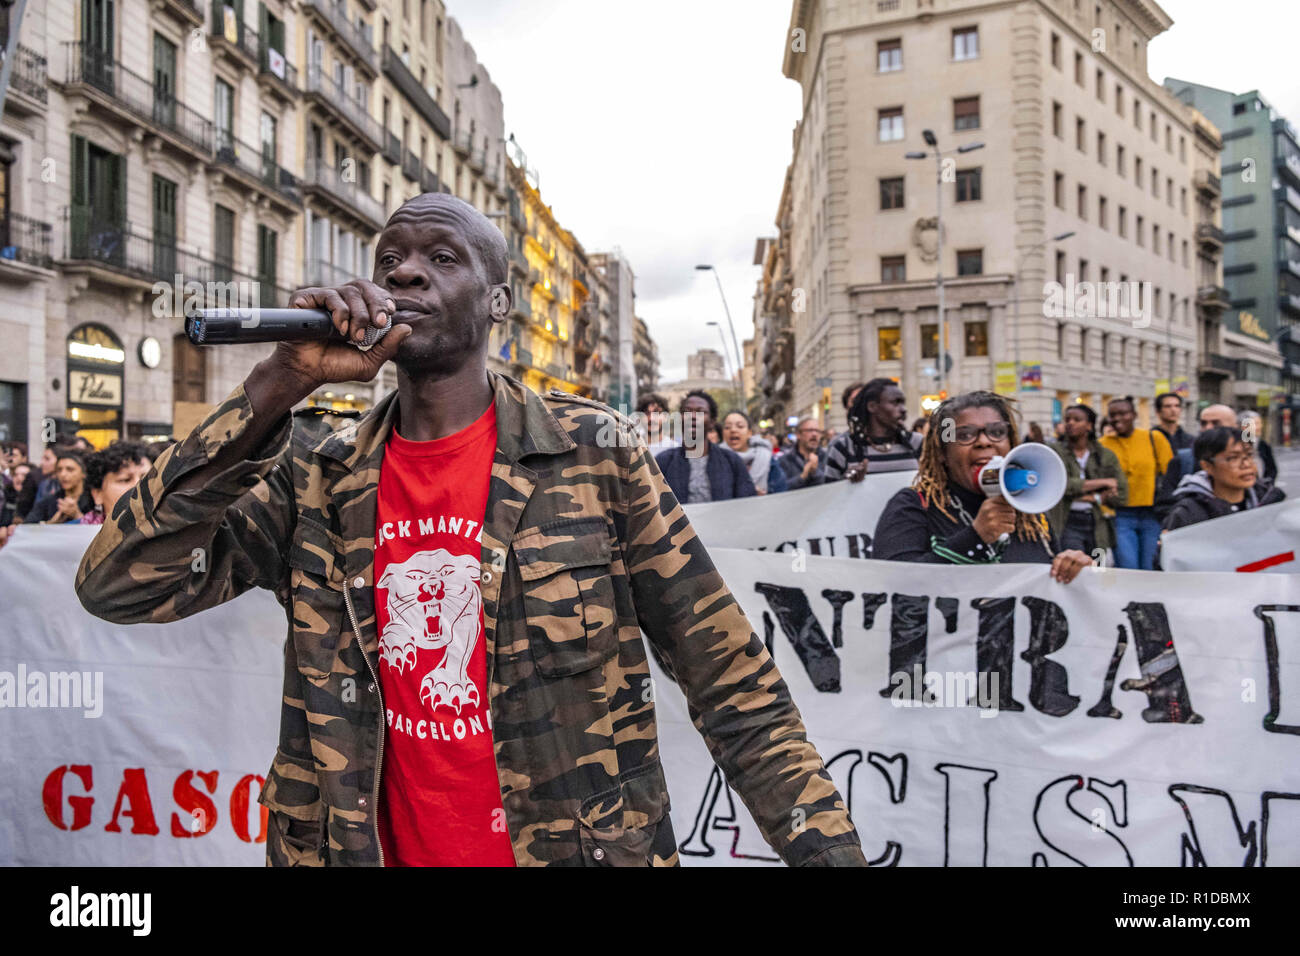 Barcelona, Catalonia, Spain. 11th Nov, 2018. A black man is seen singing slogans with a microphone during the demonstration.A new manifestation against institutional racism has crossed the streets of the center of Barcelona. Accompanied by social organizations and the Trade Union of street vendors, more than 500 people have claimed to end racism in Barcelona and have denounced police identifications according to the color of their skin. Credit: Paco Freire/SOPA Images/ZUMA Wire/Alamy Live News - Stock Image